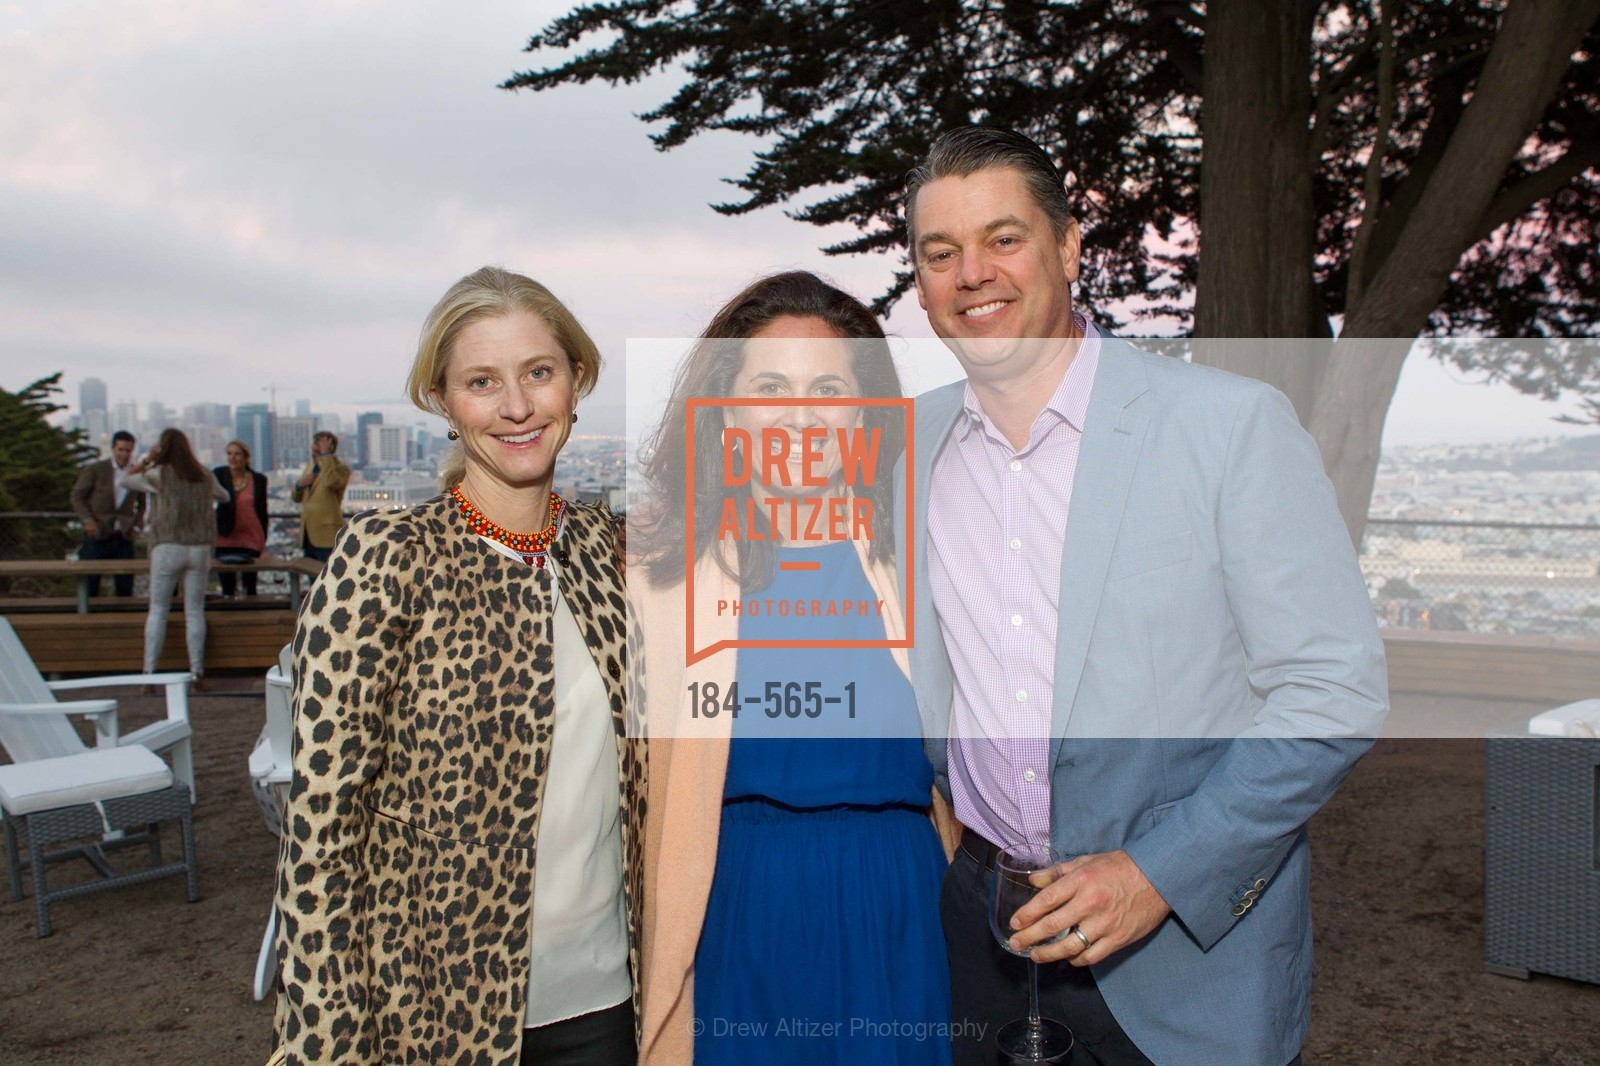 Lisa Hauswirth, Shelley Bransten, Chris Hauswirth, GLAAD GALA Kick-Off Party Hosted by SAKS FIFTH AVENUE, Saks Fifth Avenue. 384 Post Street, September 12th, 2014,Drew Altizer, Drew Altizer Photography, full-service agency, private events, San Francisco photographer, photographer california